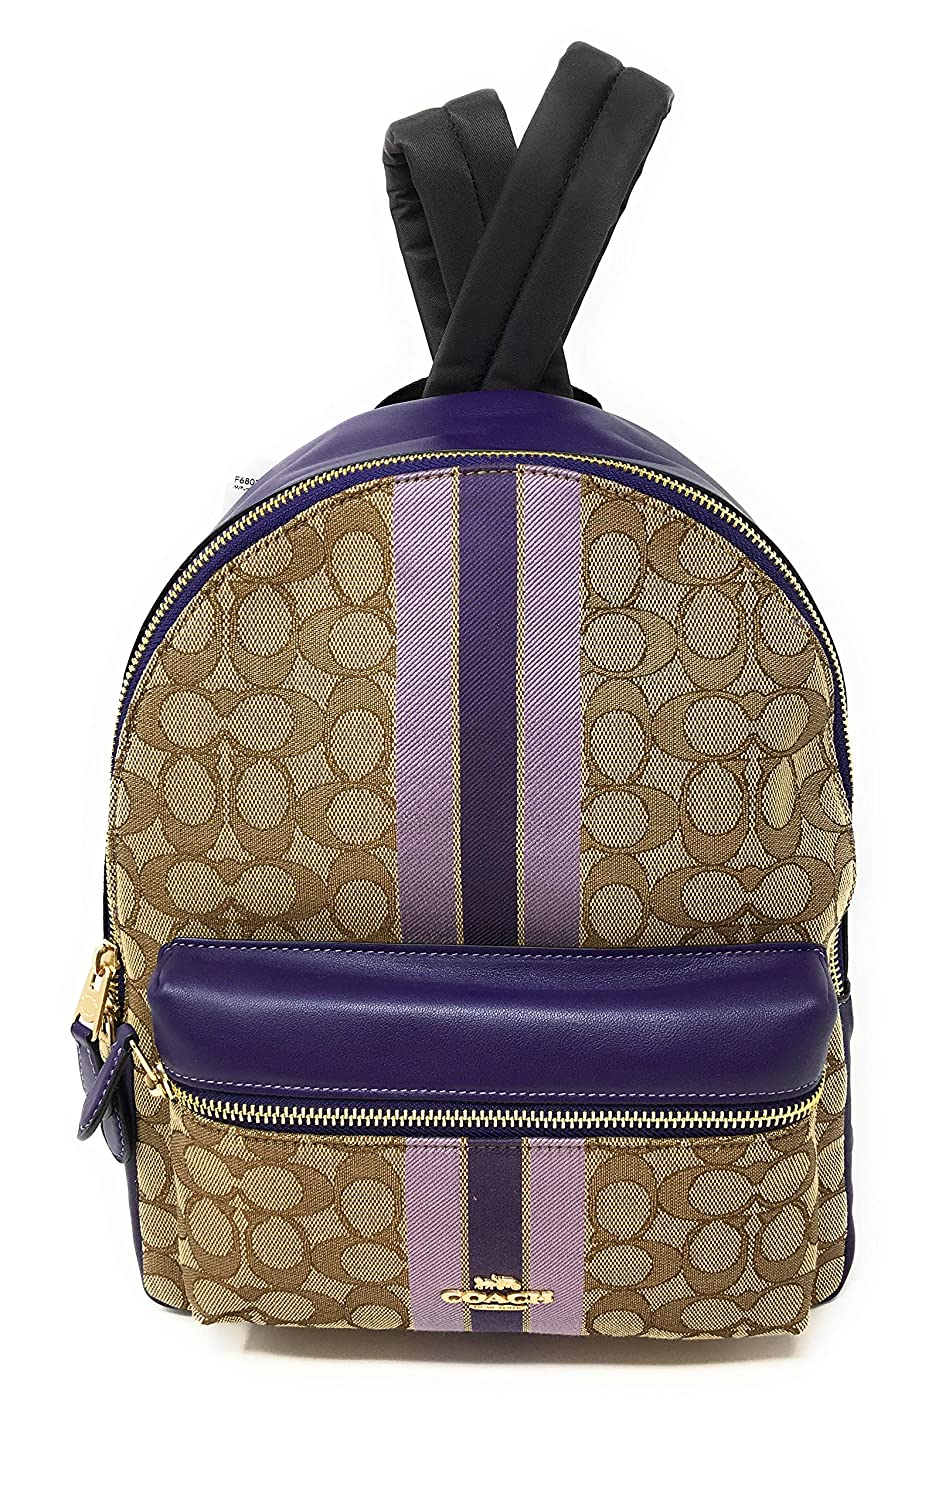 Coach Womens Charlie Signature Leather Backpack